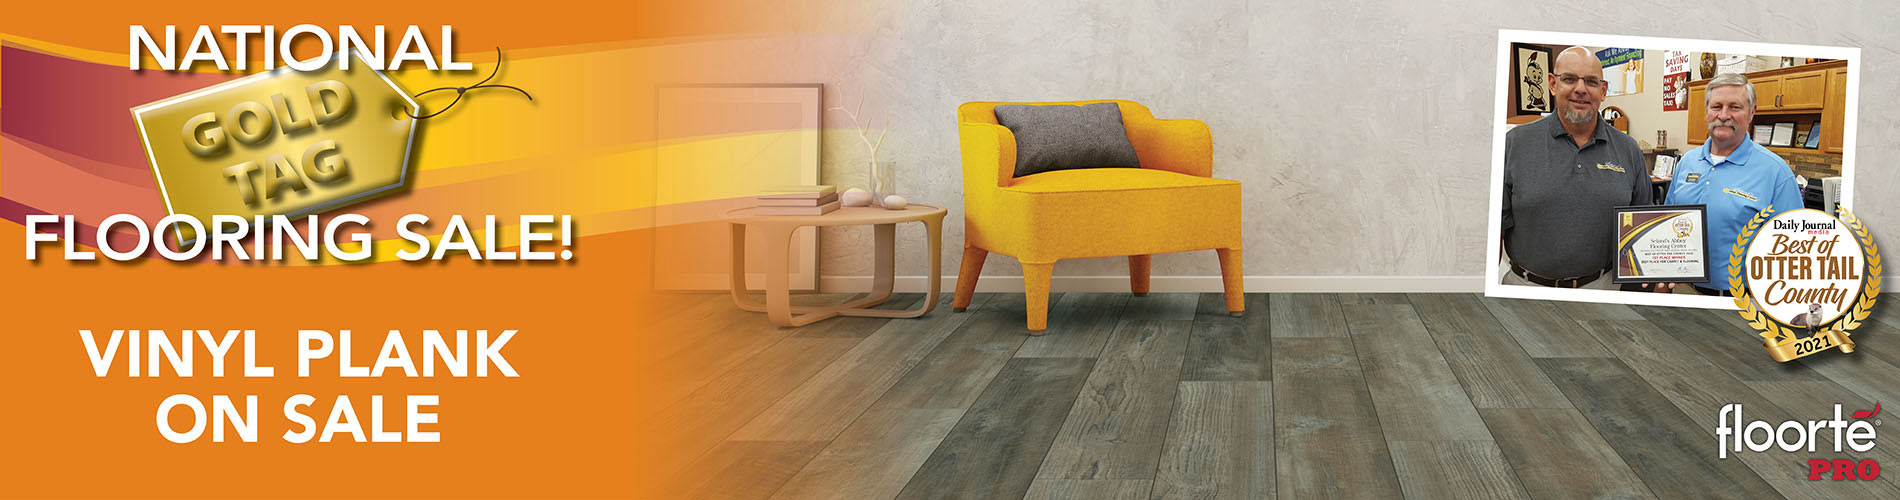 Vinyl plank is on sale during our National Gold Tag Flooring Sale.